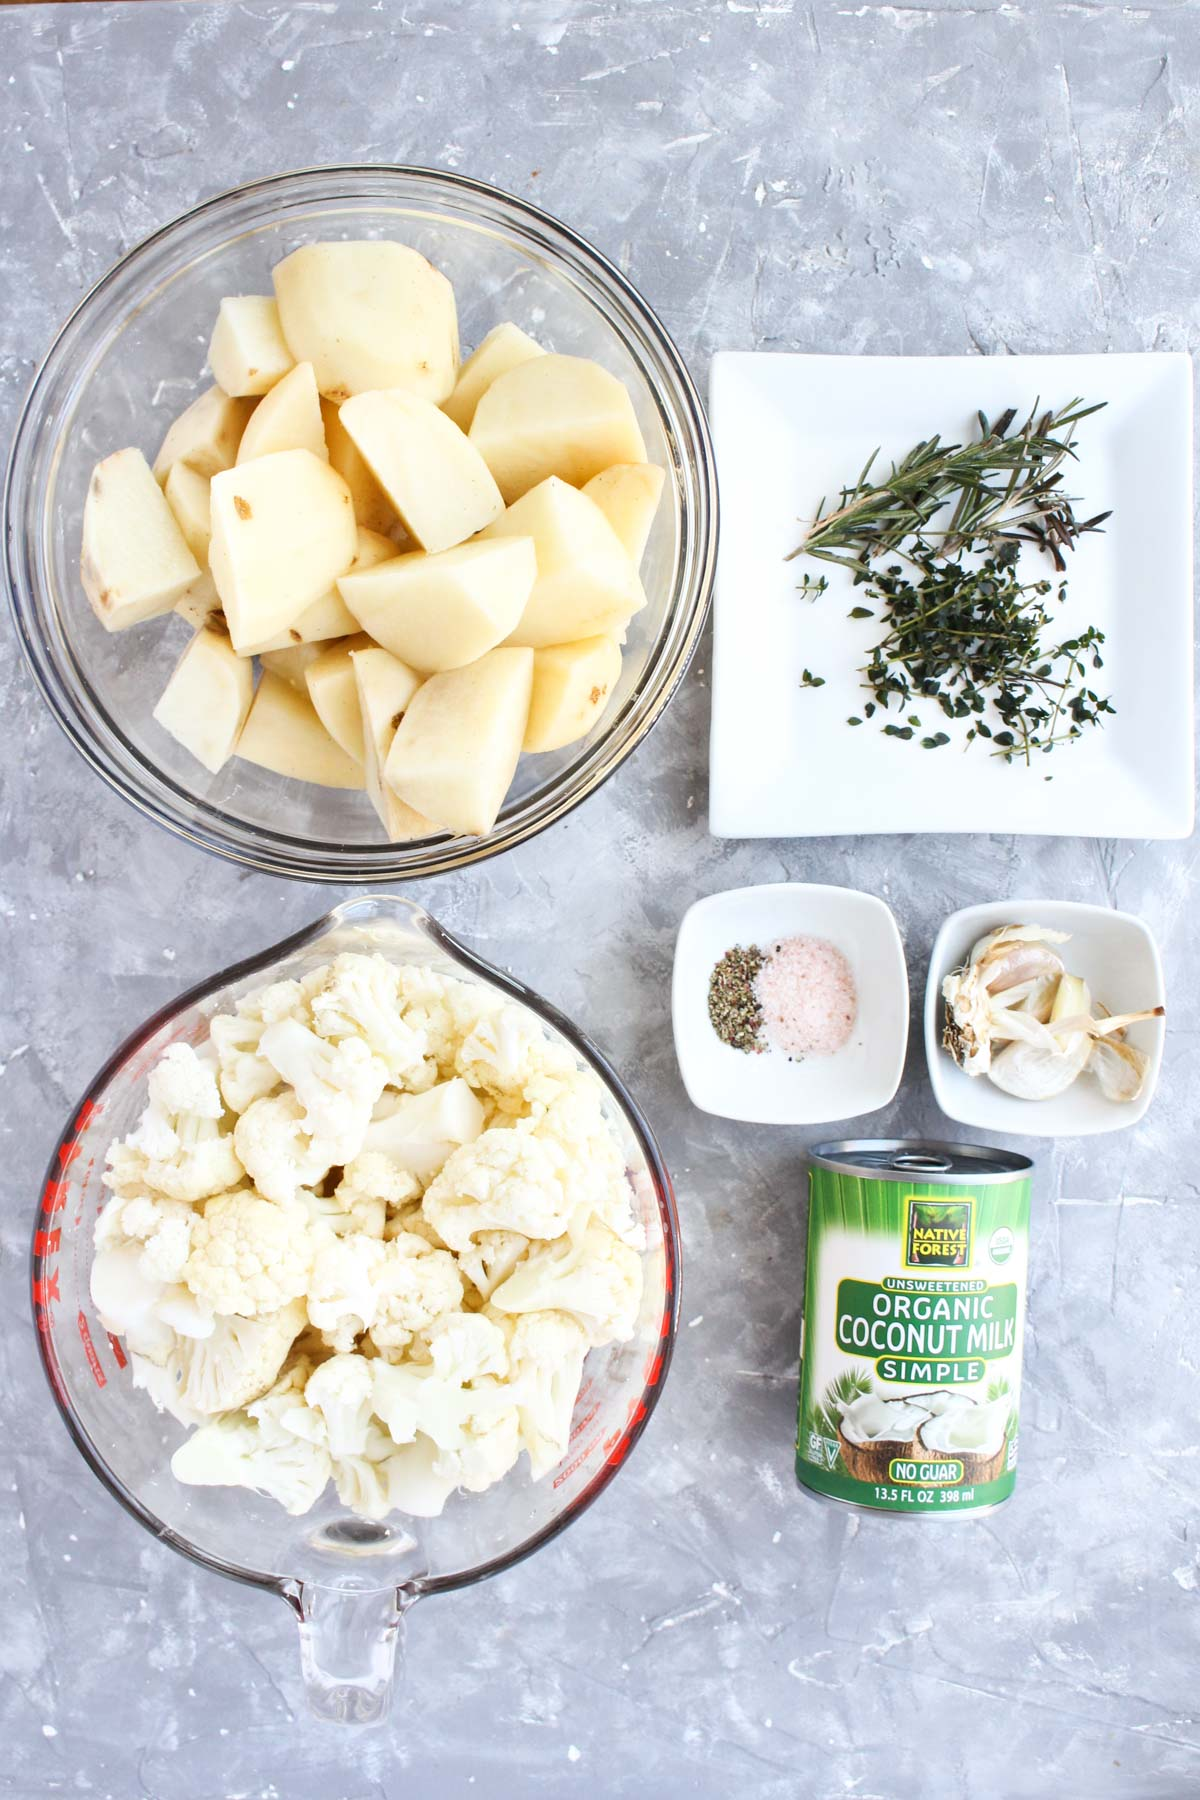 Ingredients for mashed potatoes.